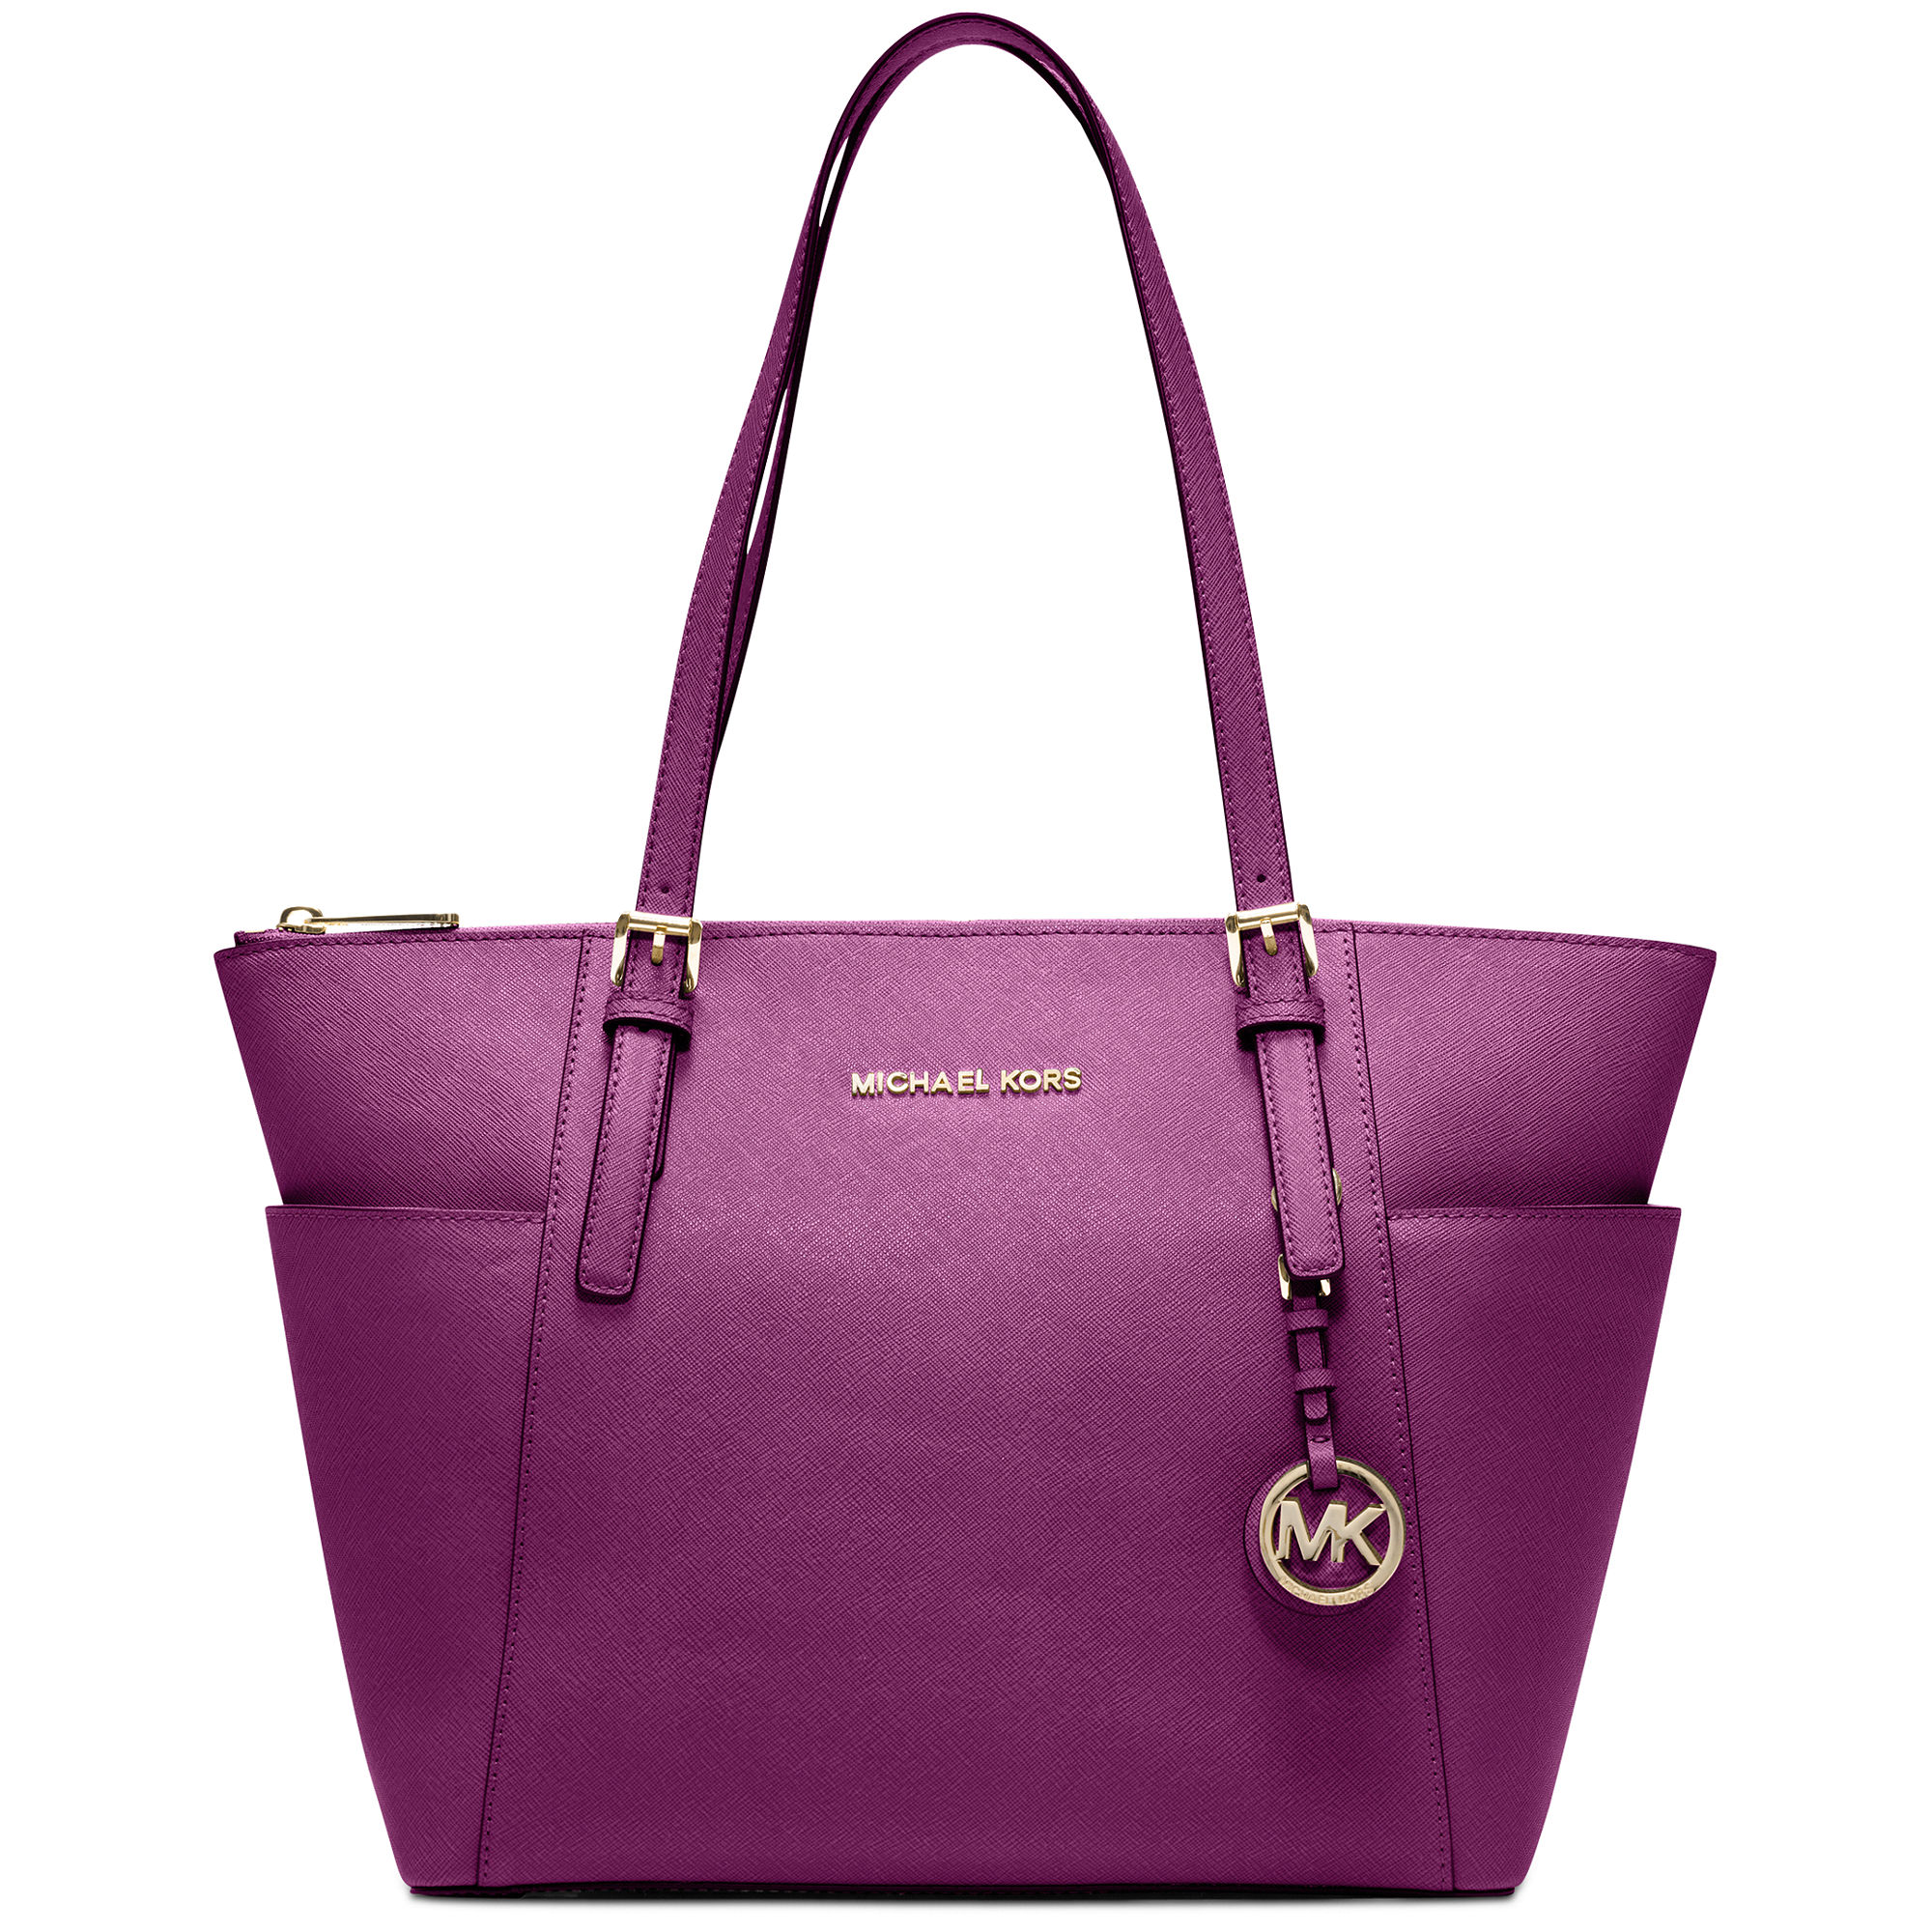 michael kors jet set east west top zip tote in purple. Black Bedroom Furniture Sets. Home Design Ideas